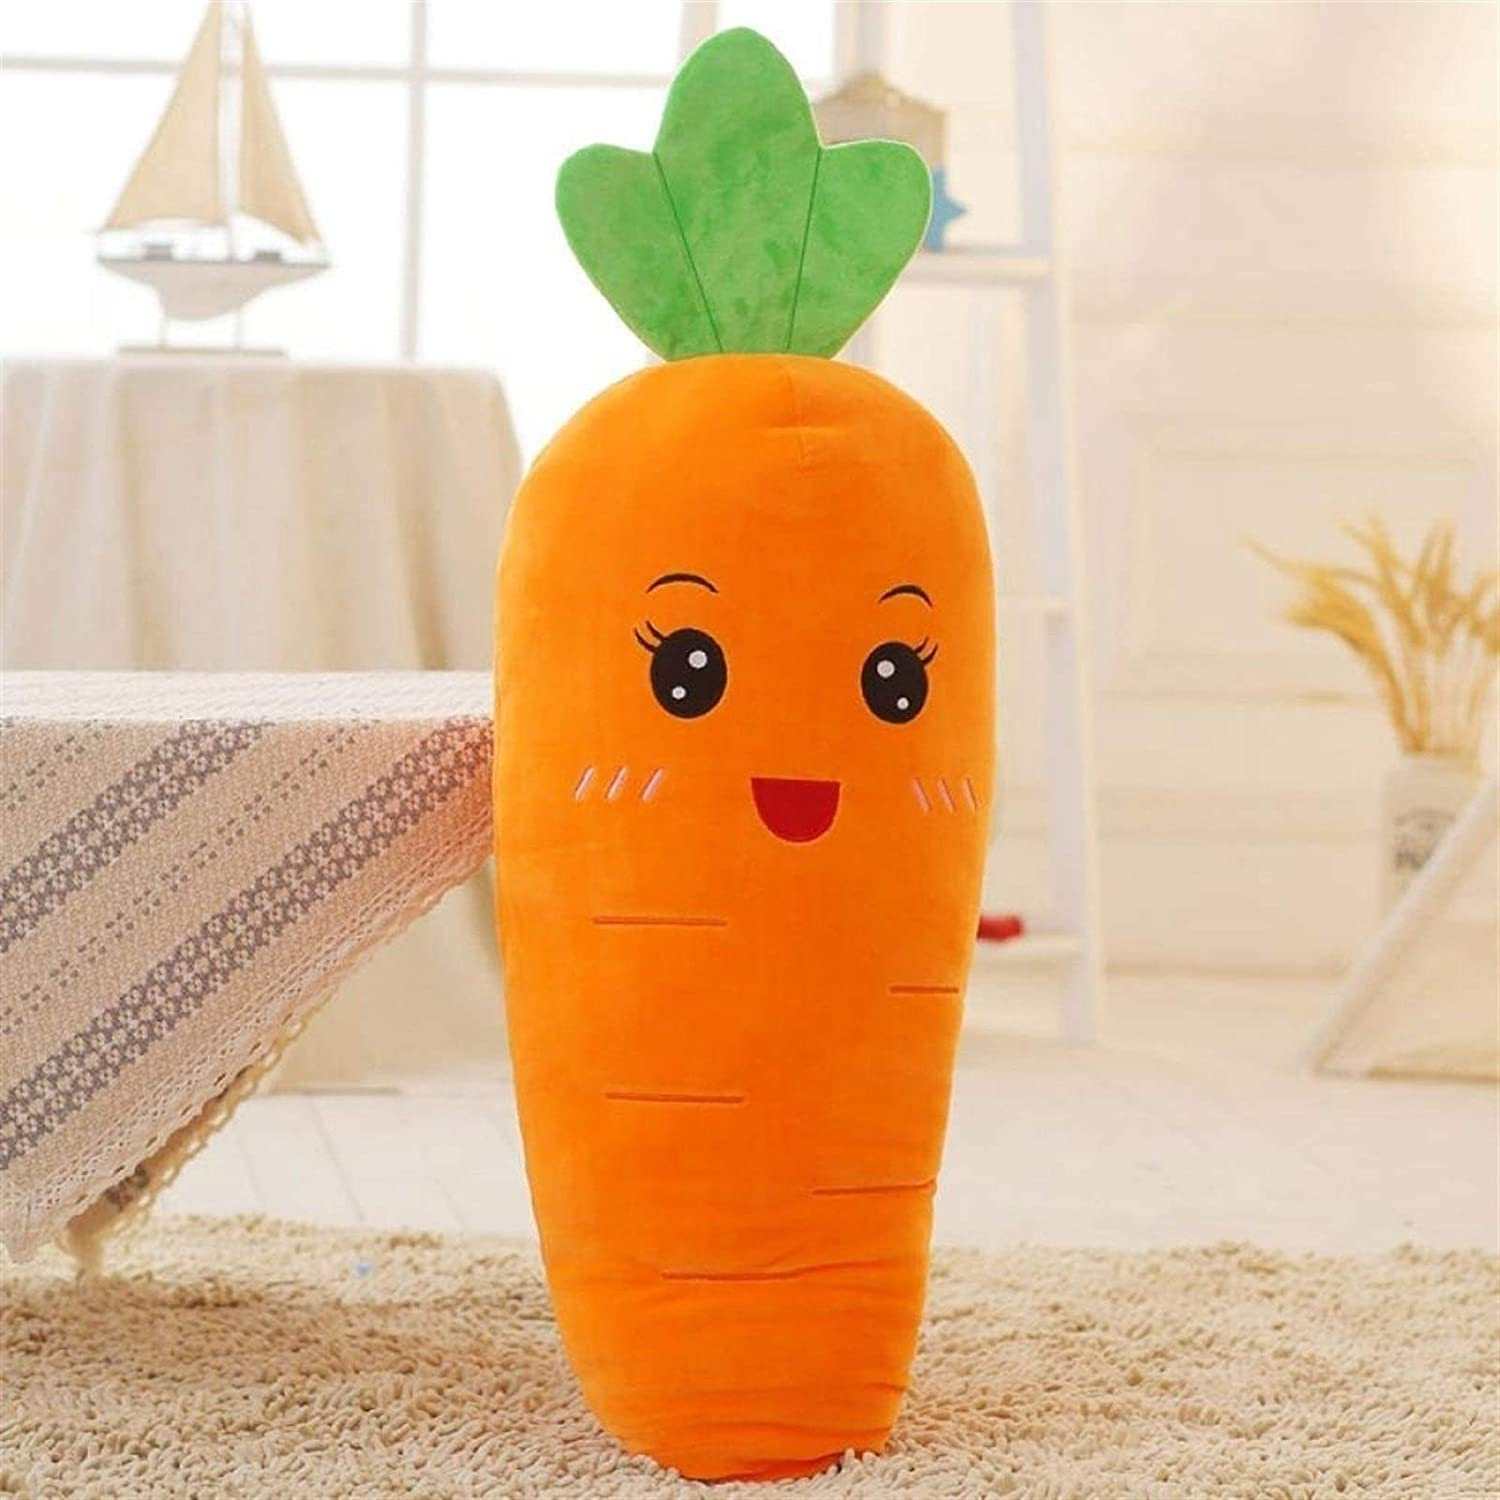 Comfortable and Durable Max 60% OFF Funny Beauty products Cartoon Carrot Si Plush Smiley Toy